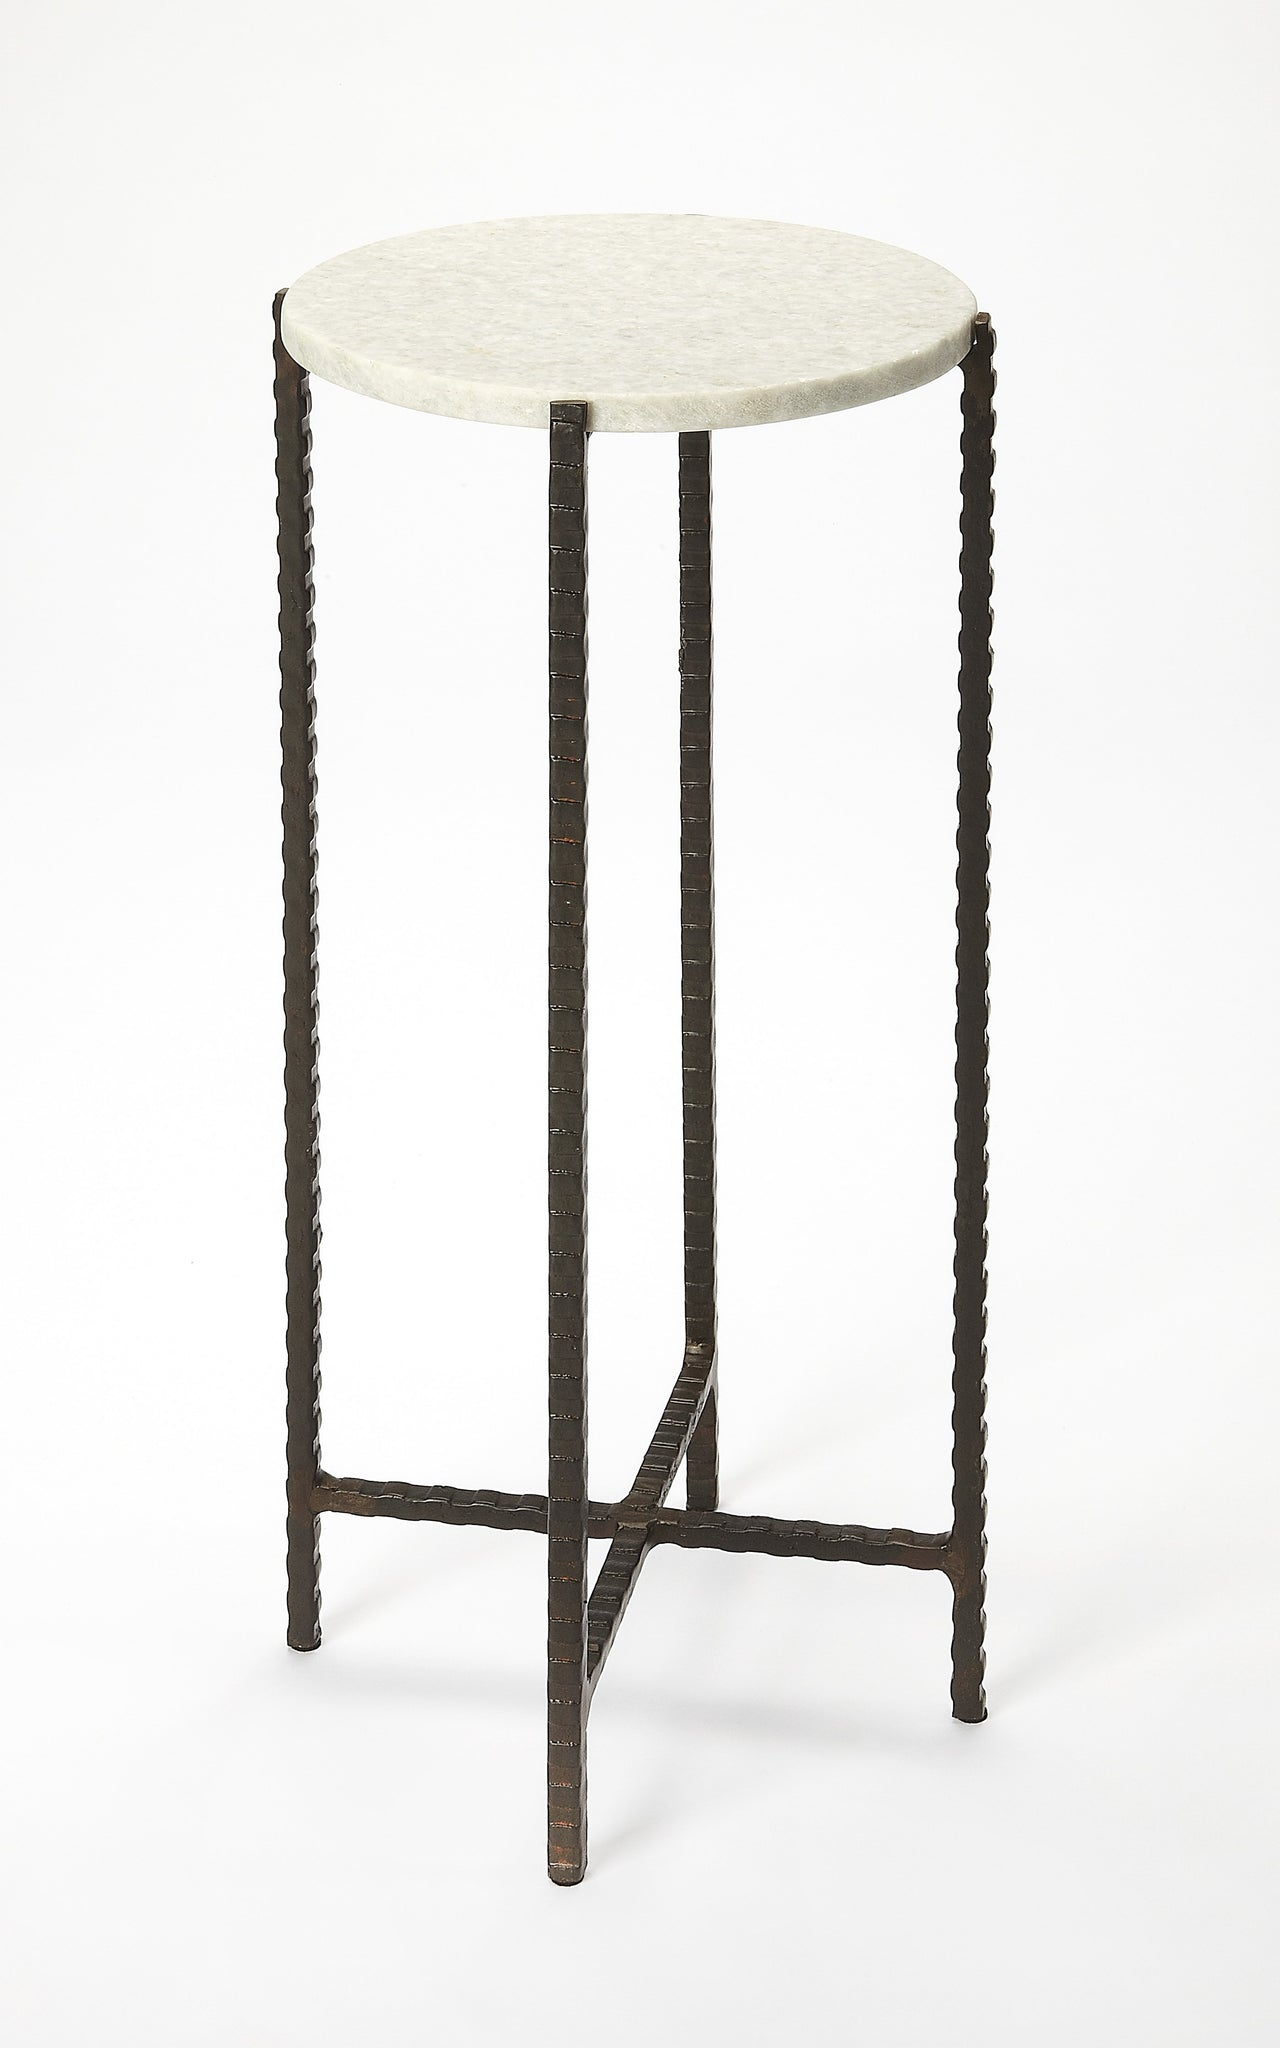 Nigella Round Marble & Metal Accent Table